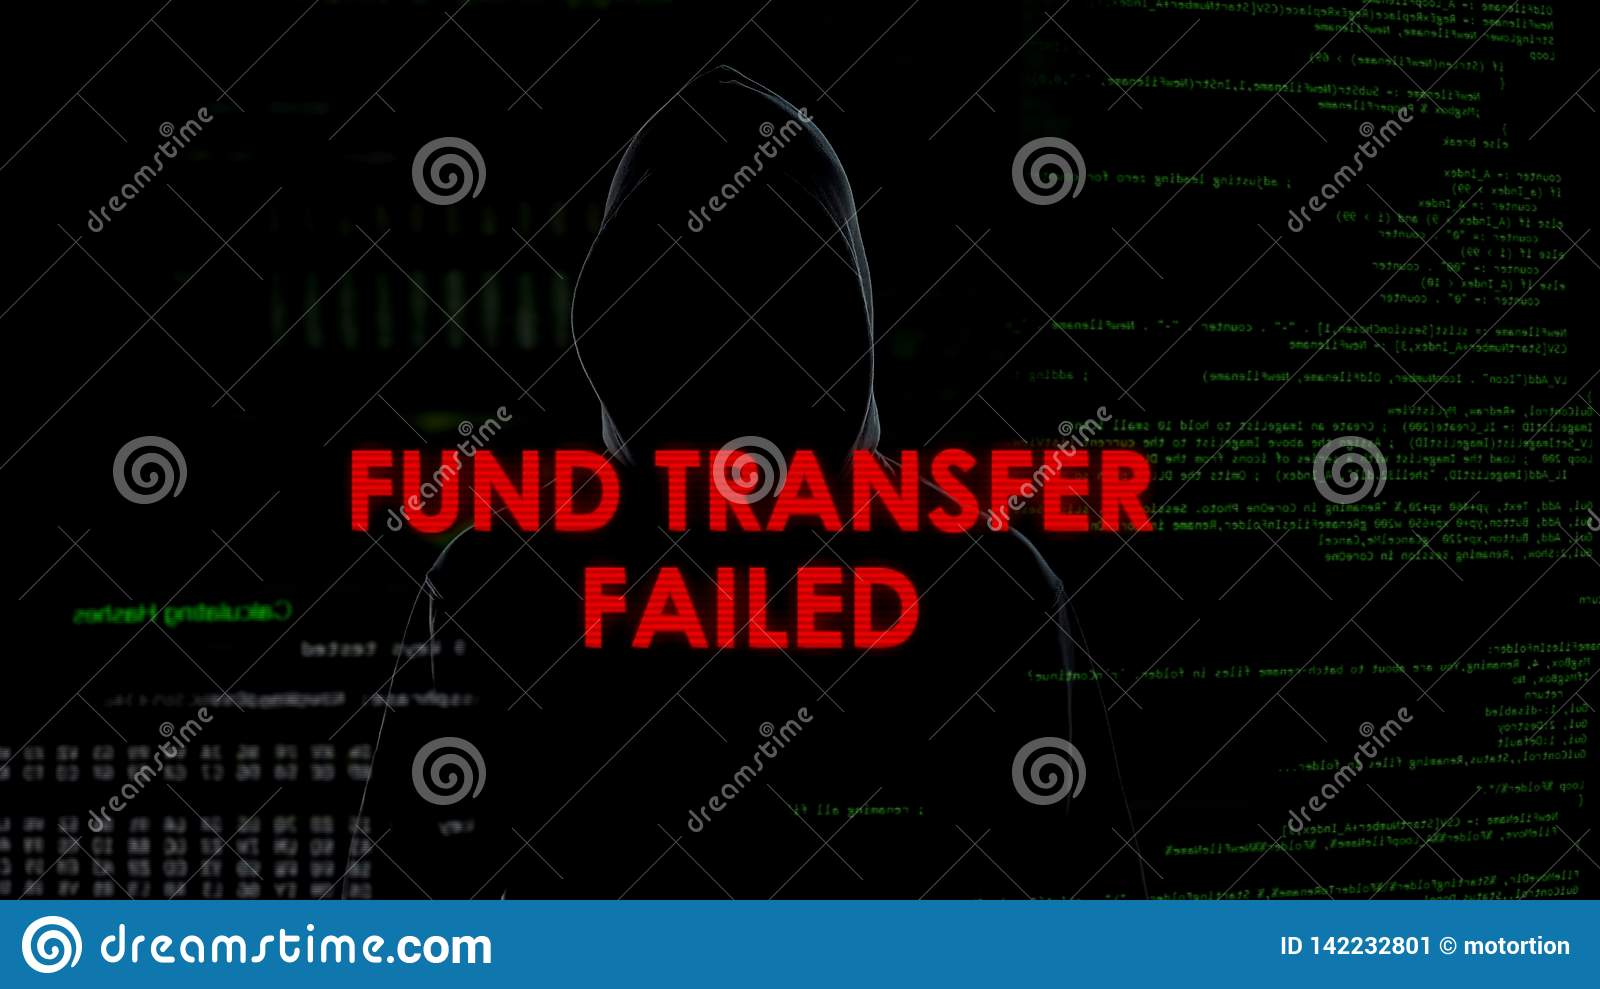 Fund Transfer Failed, Unsuccessful Attempt To Steal Money From Bank